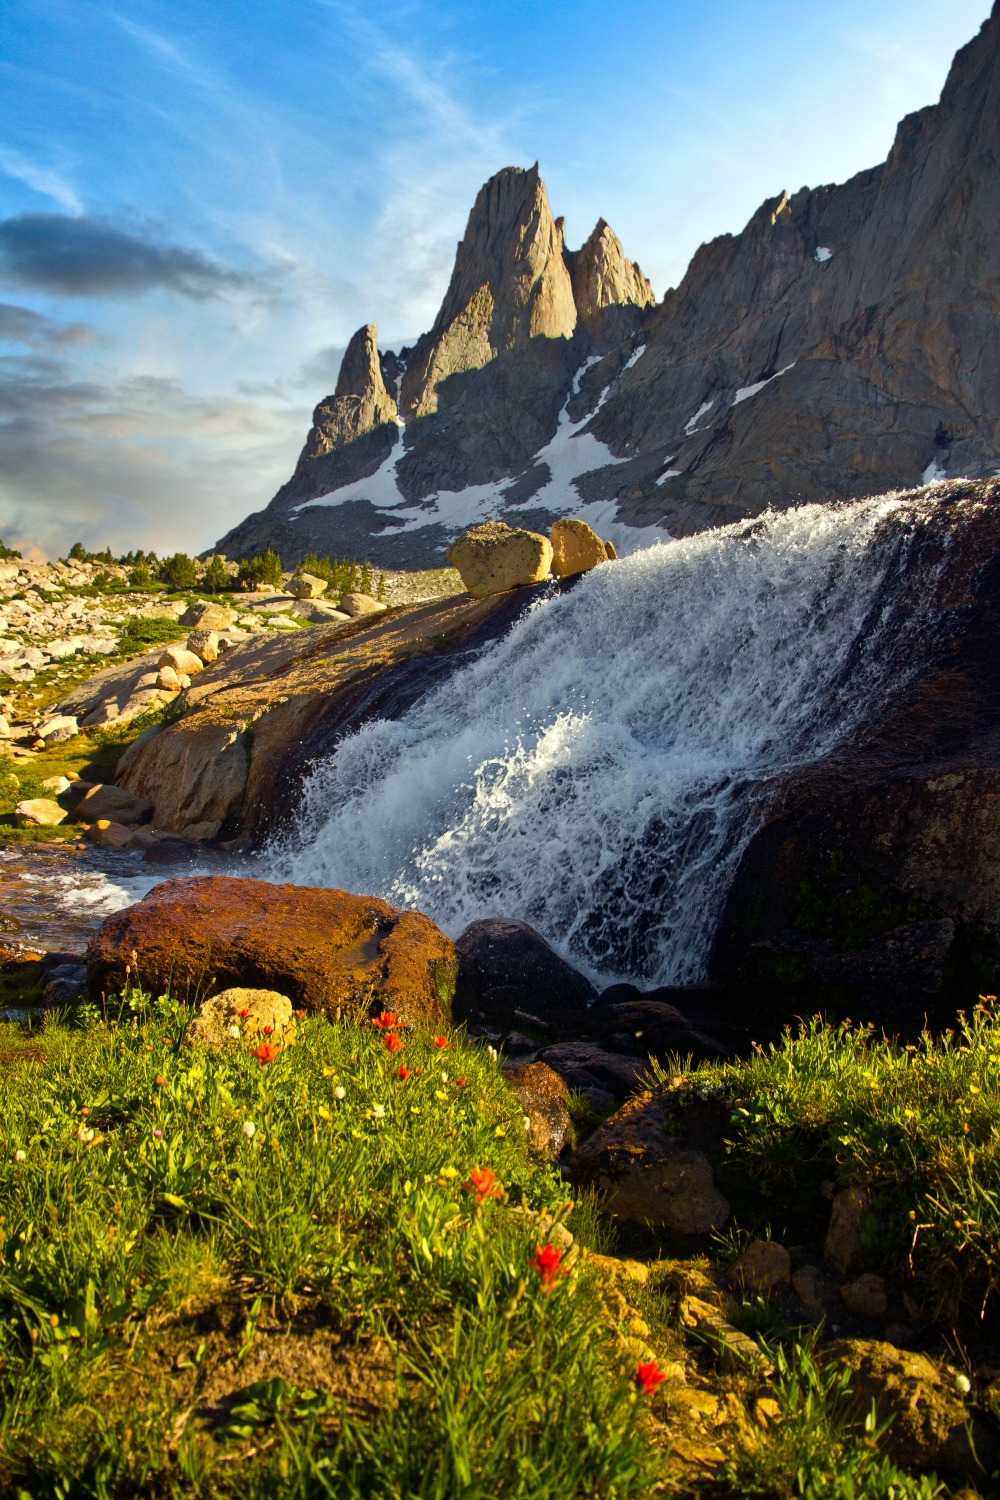 Warbonnet Peak and Waterfall, Cirque of the Towers